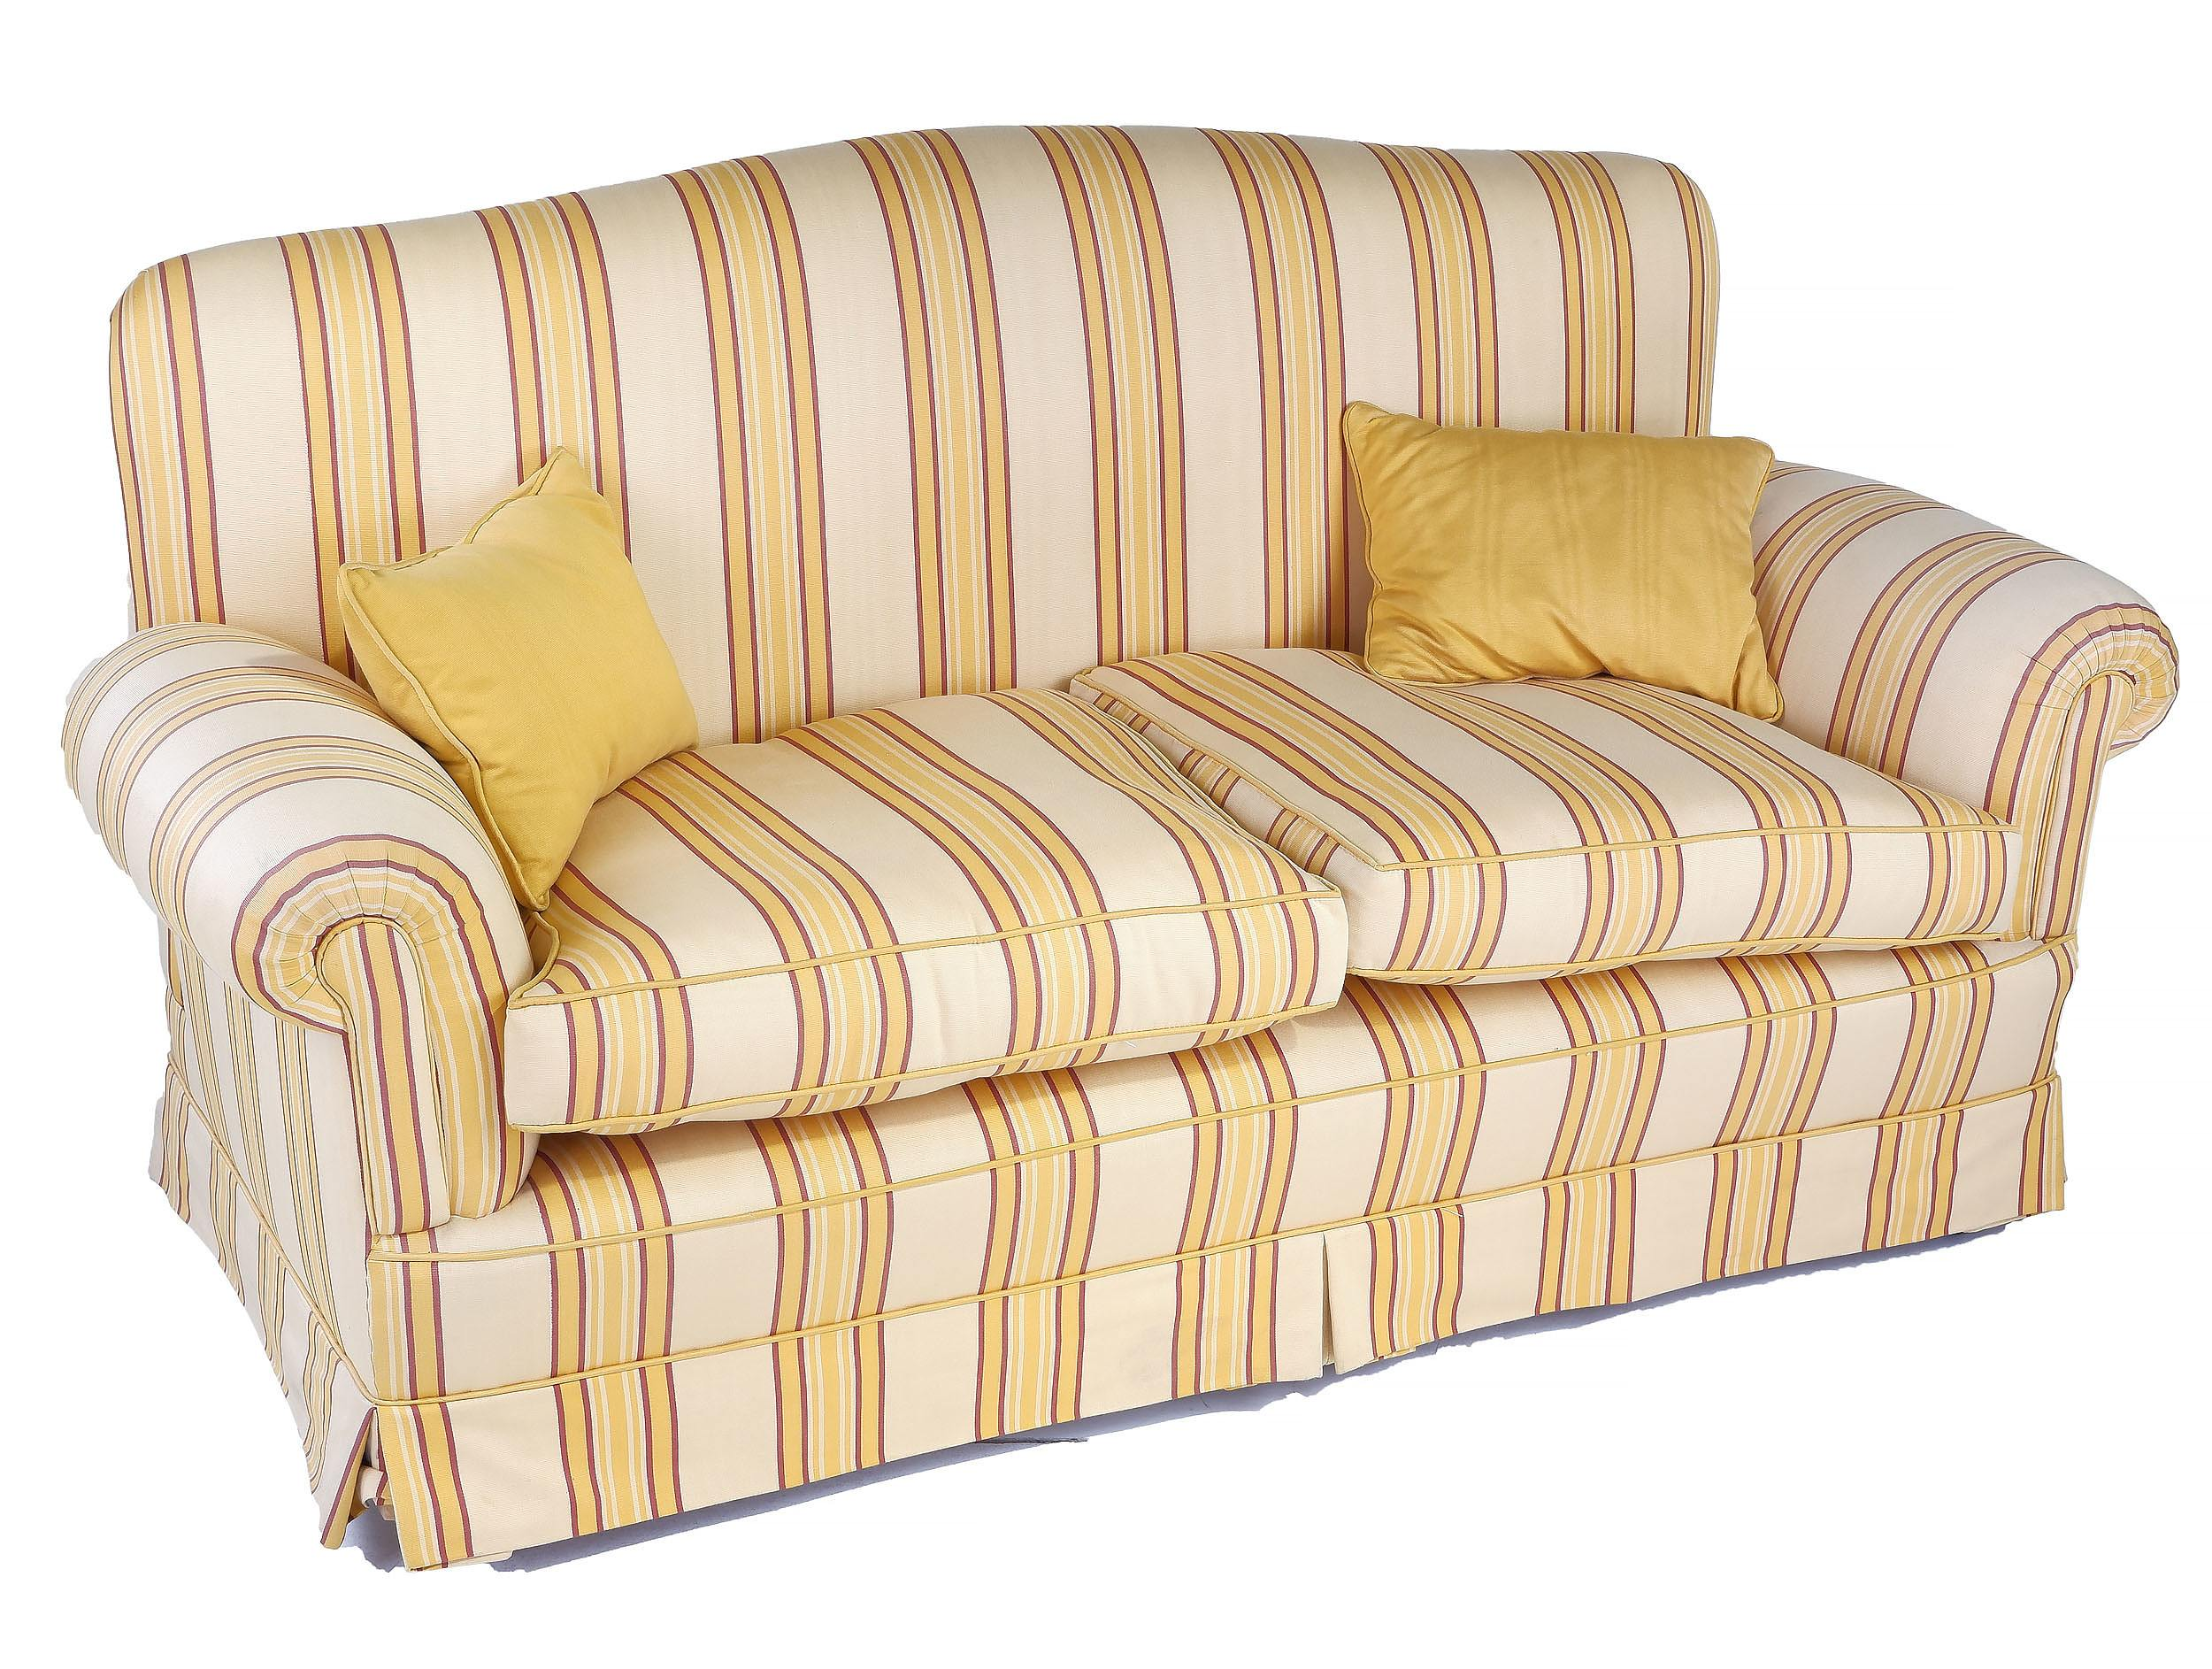 'Two Seater Lounge with Striped Upholstery'